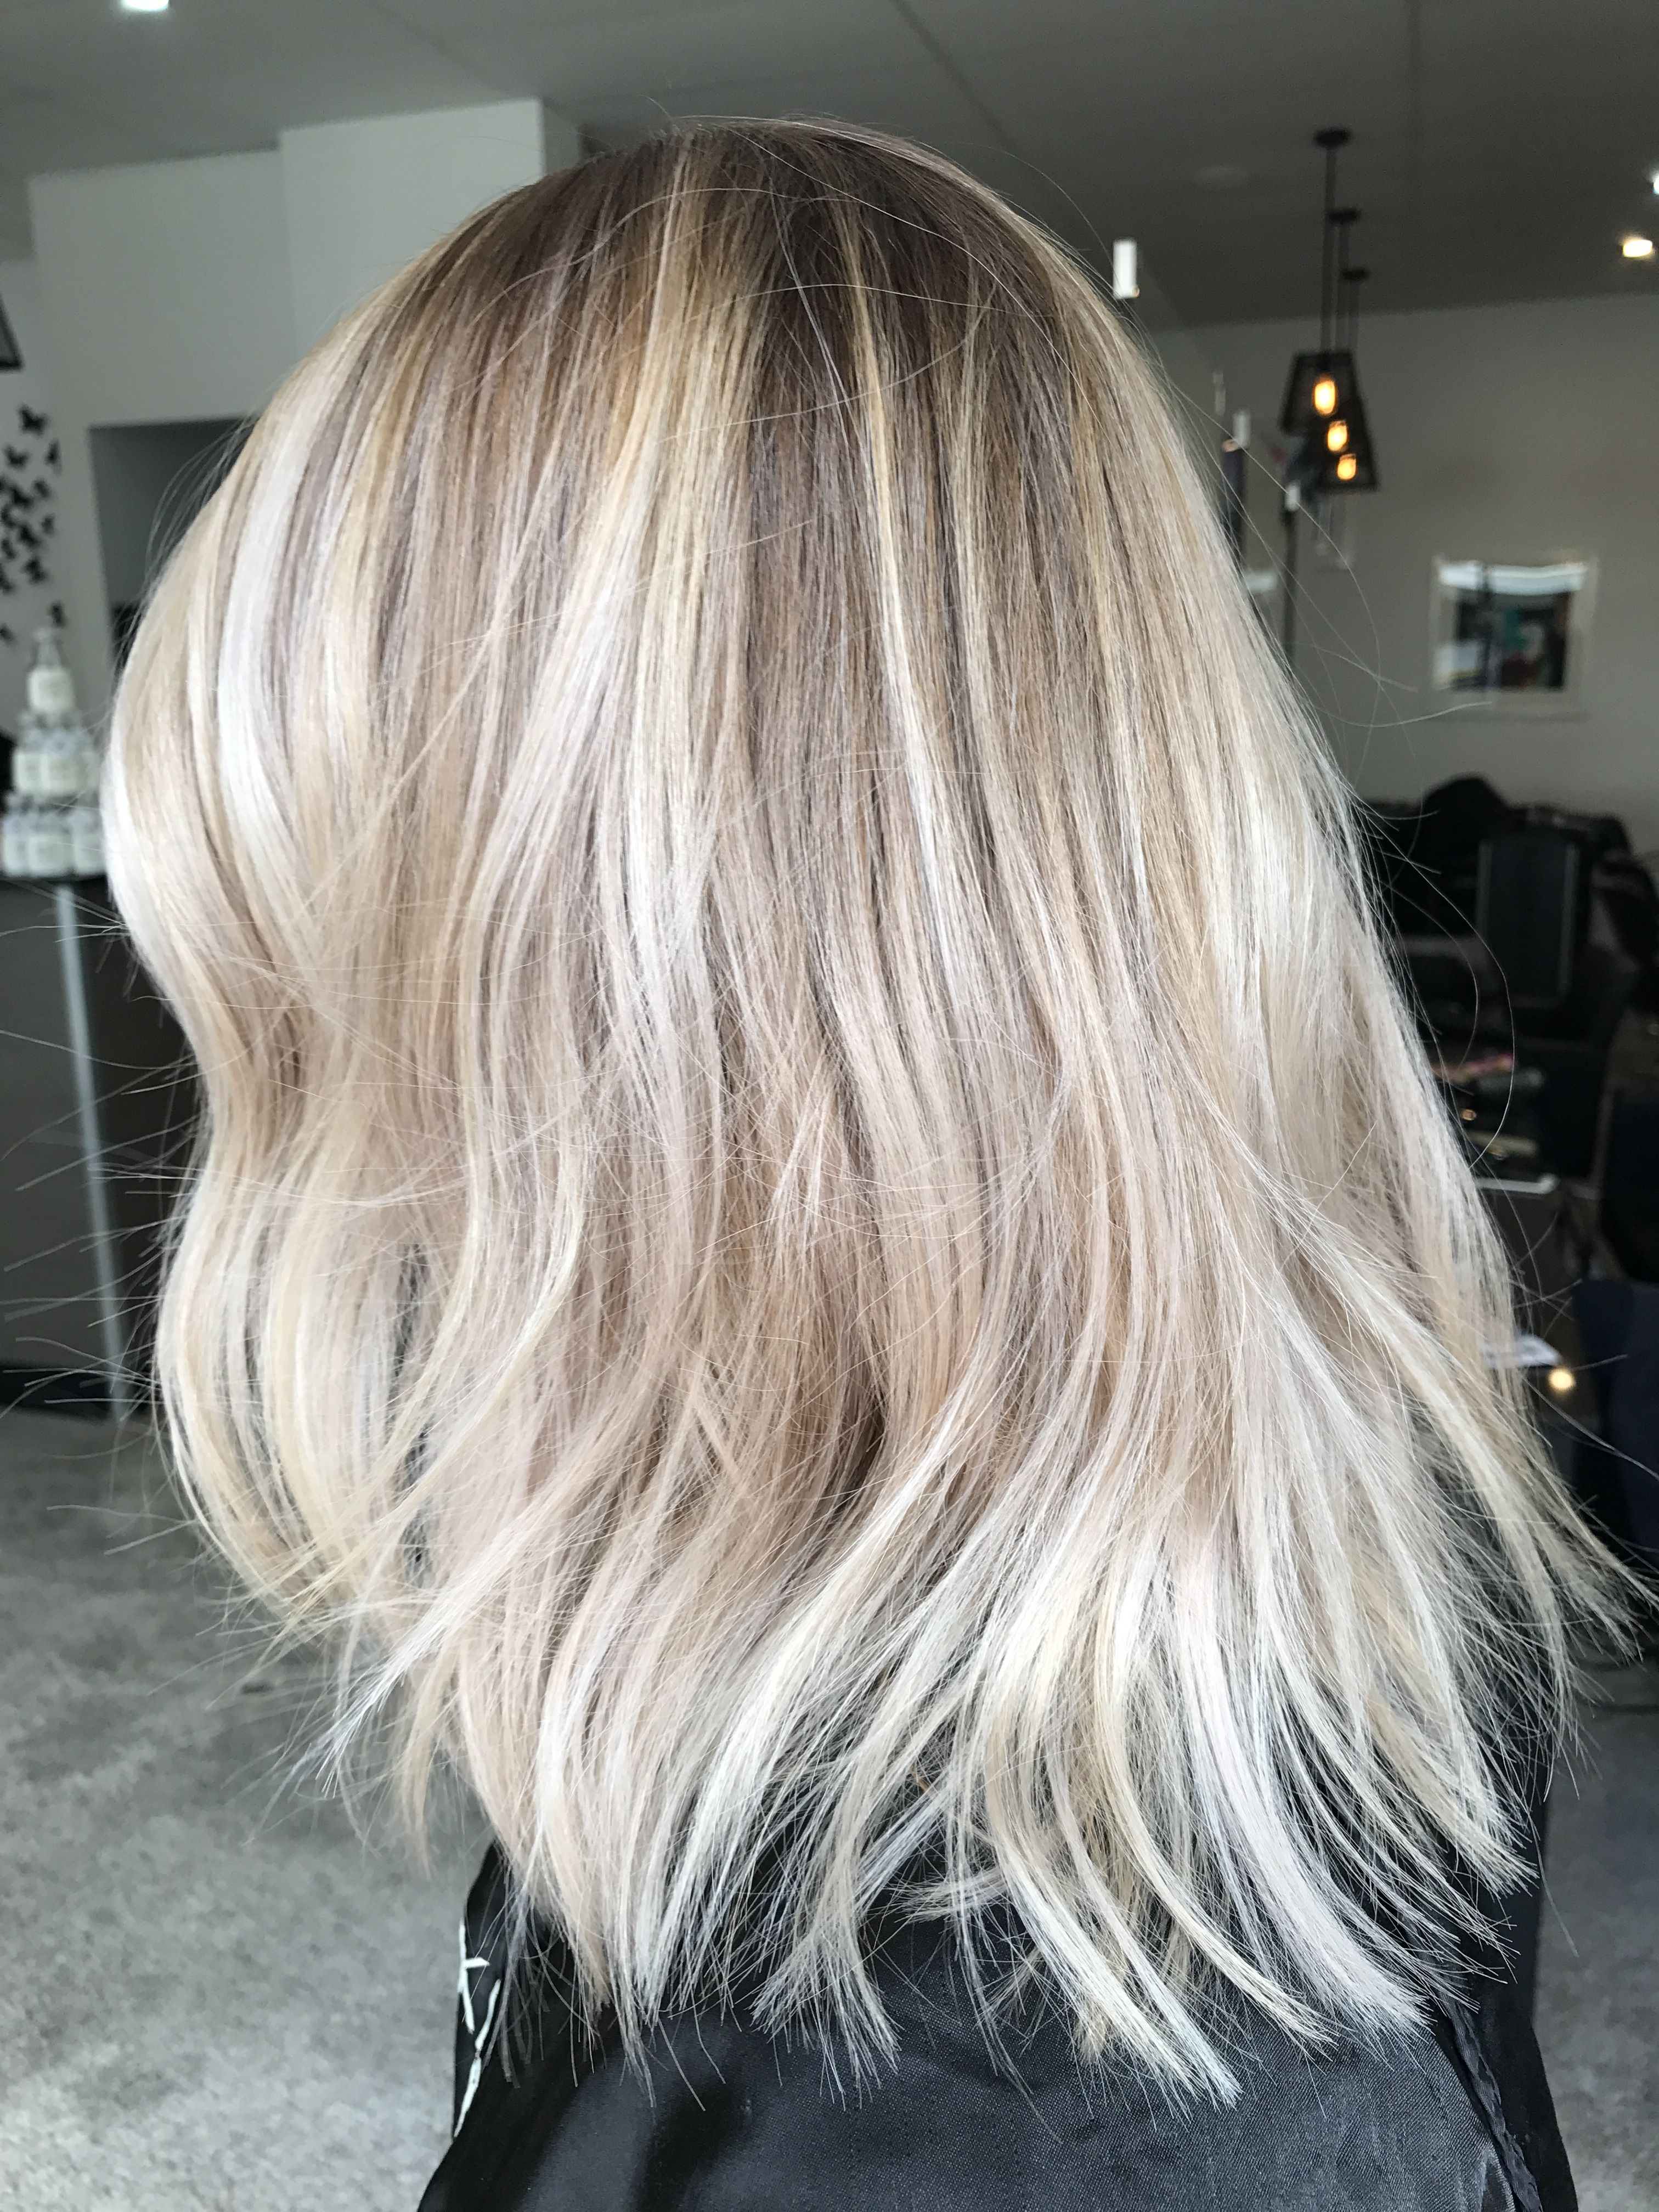 Best Balayage Highlights Hair Amandamajor Is A Agency